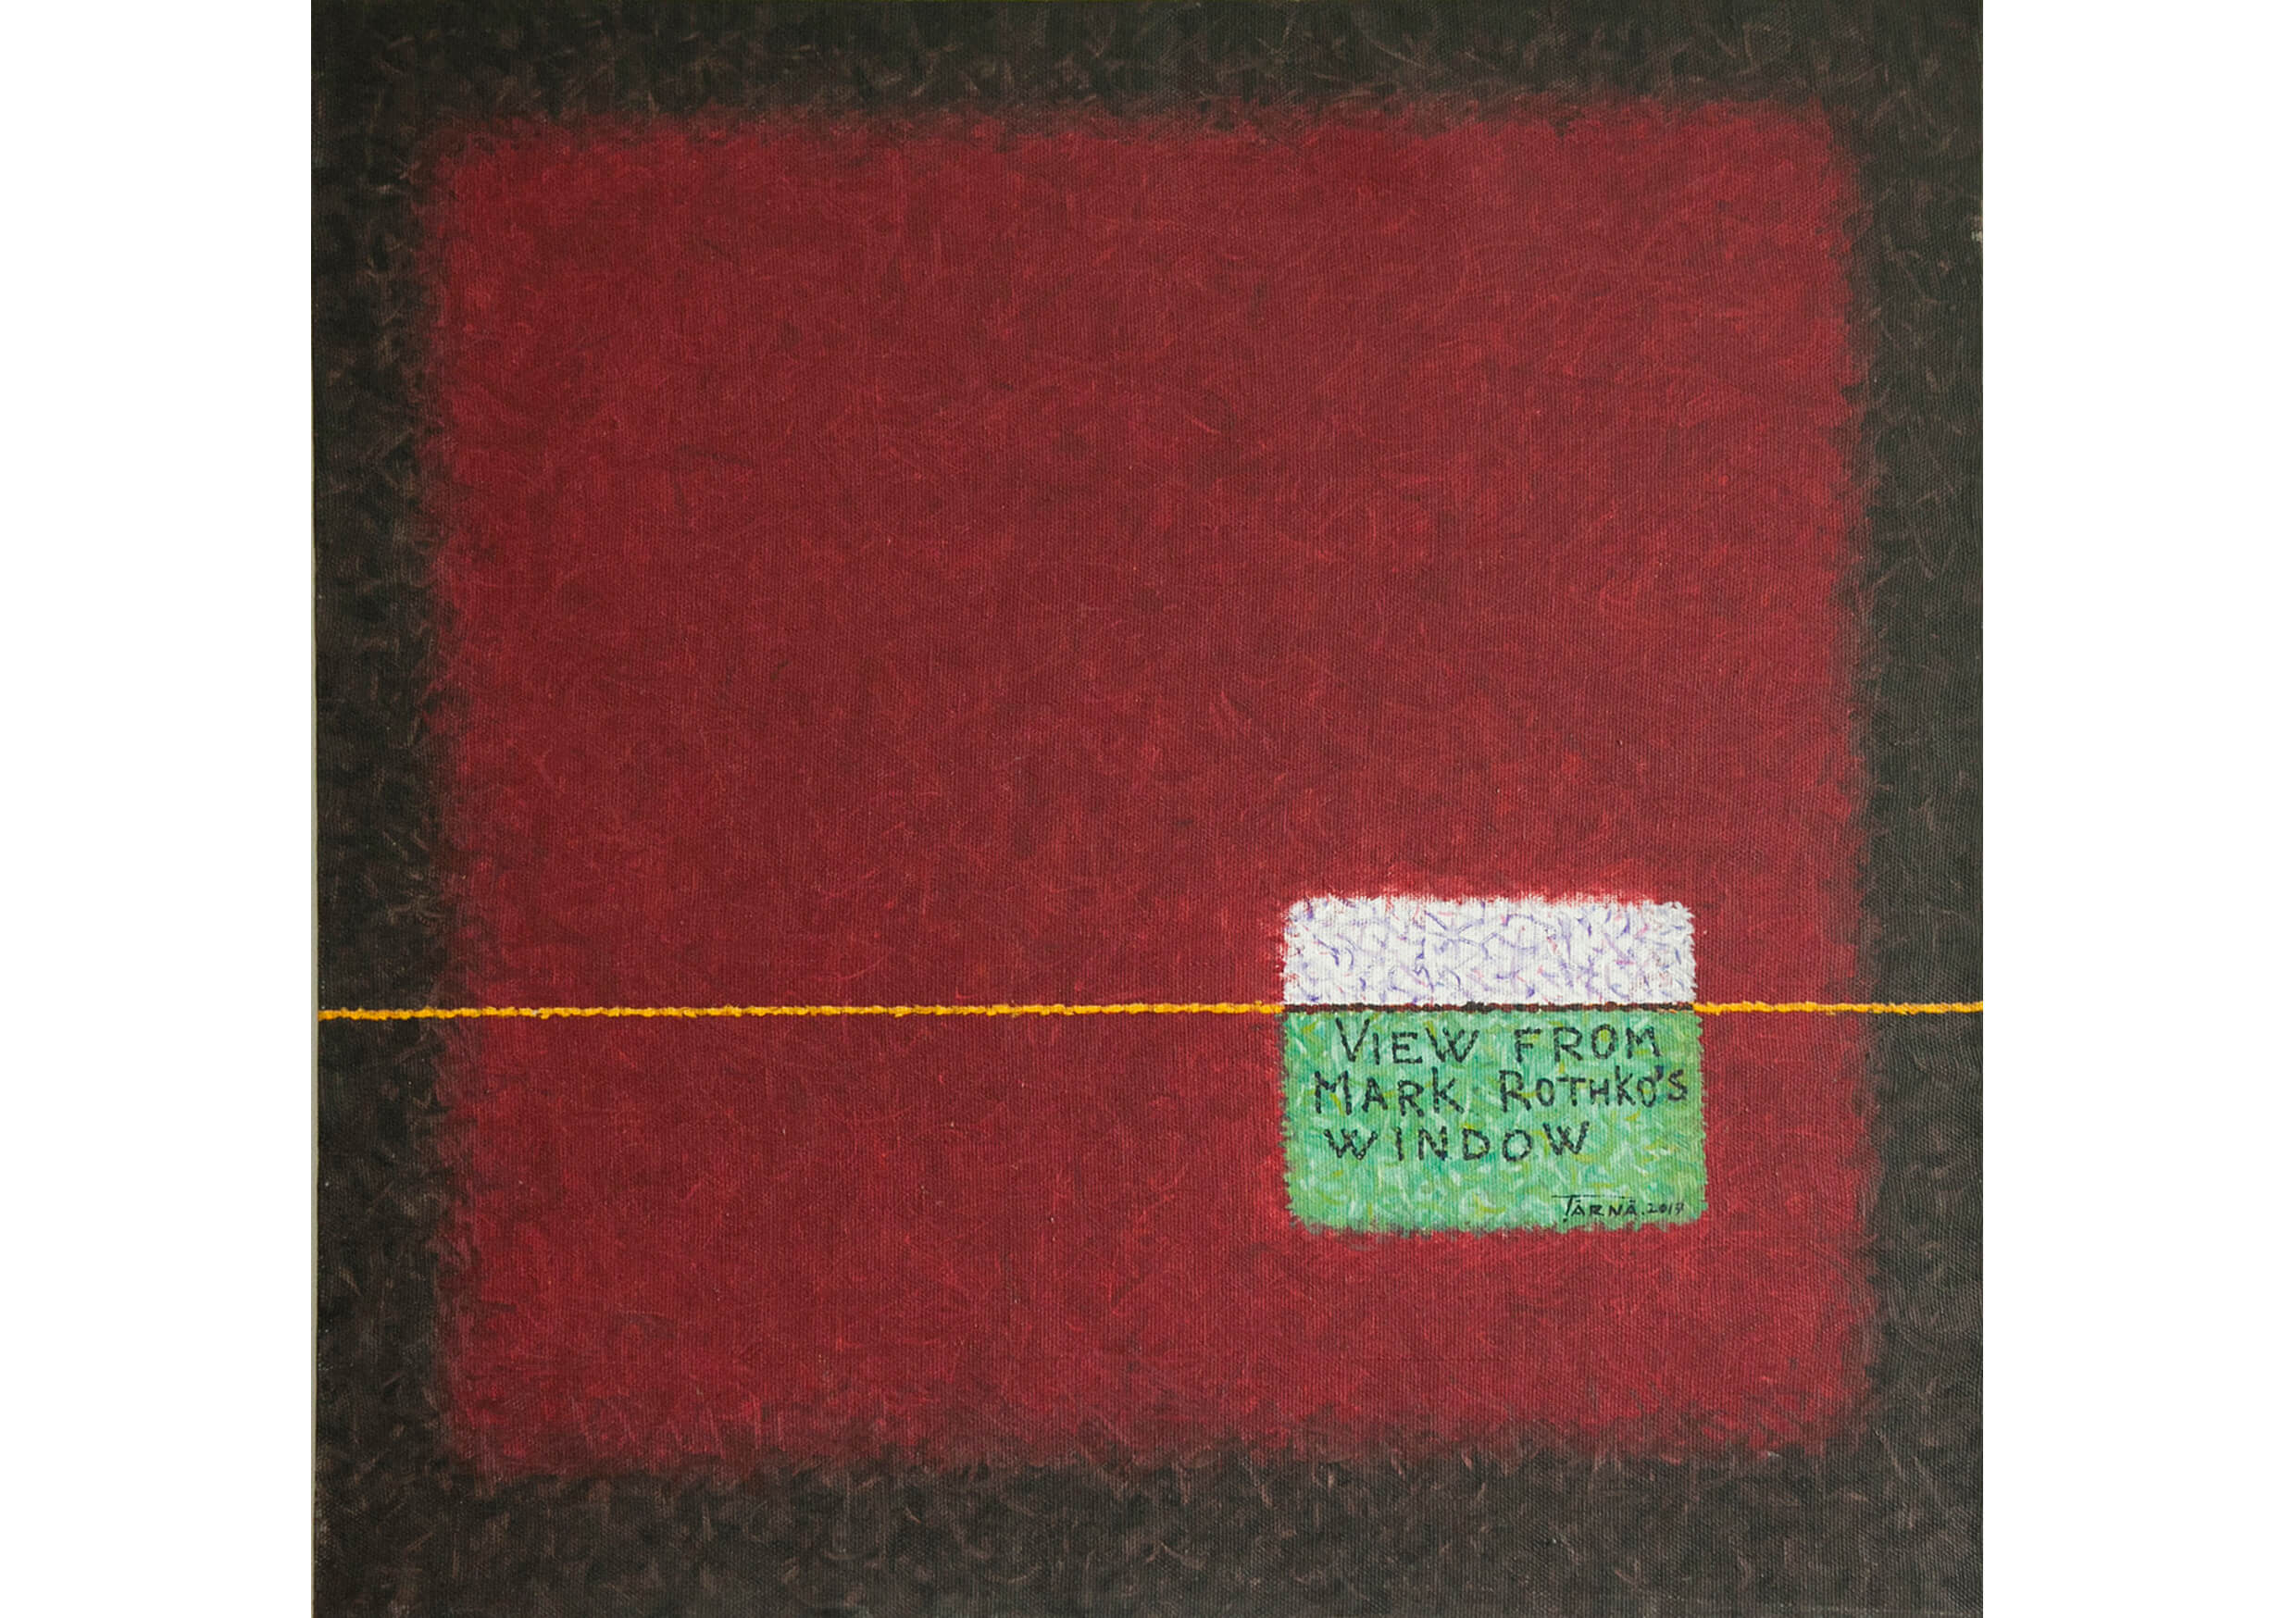 View from Mark Rothko's window, Oil on canvas, 95 x 95 cm